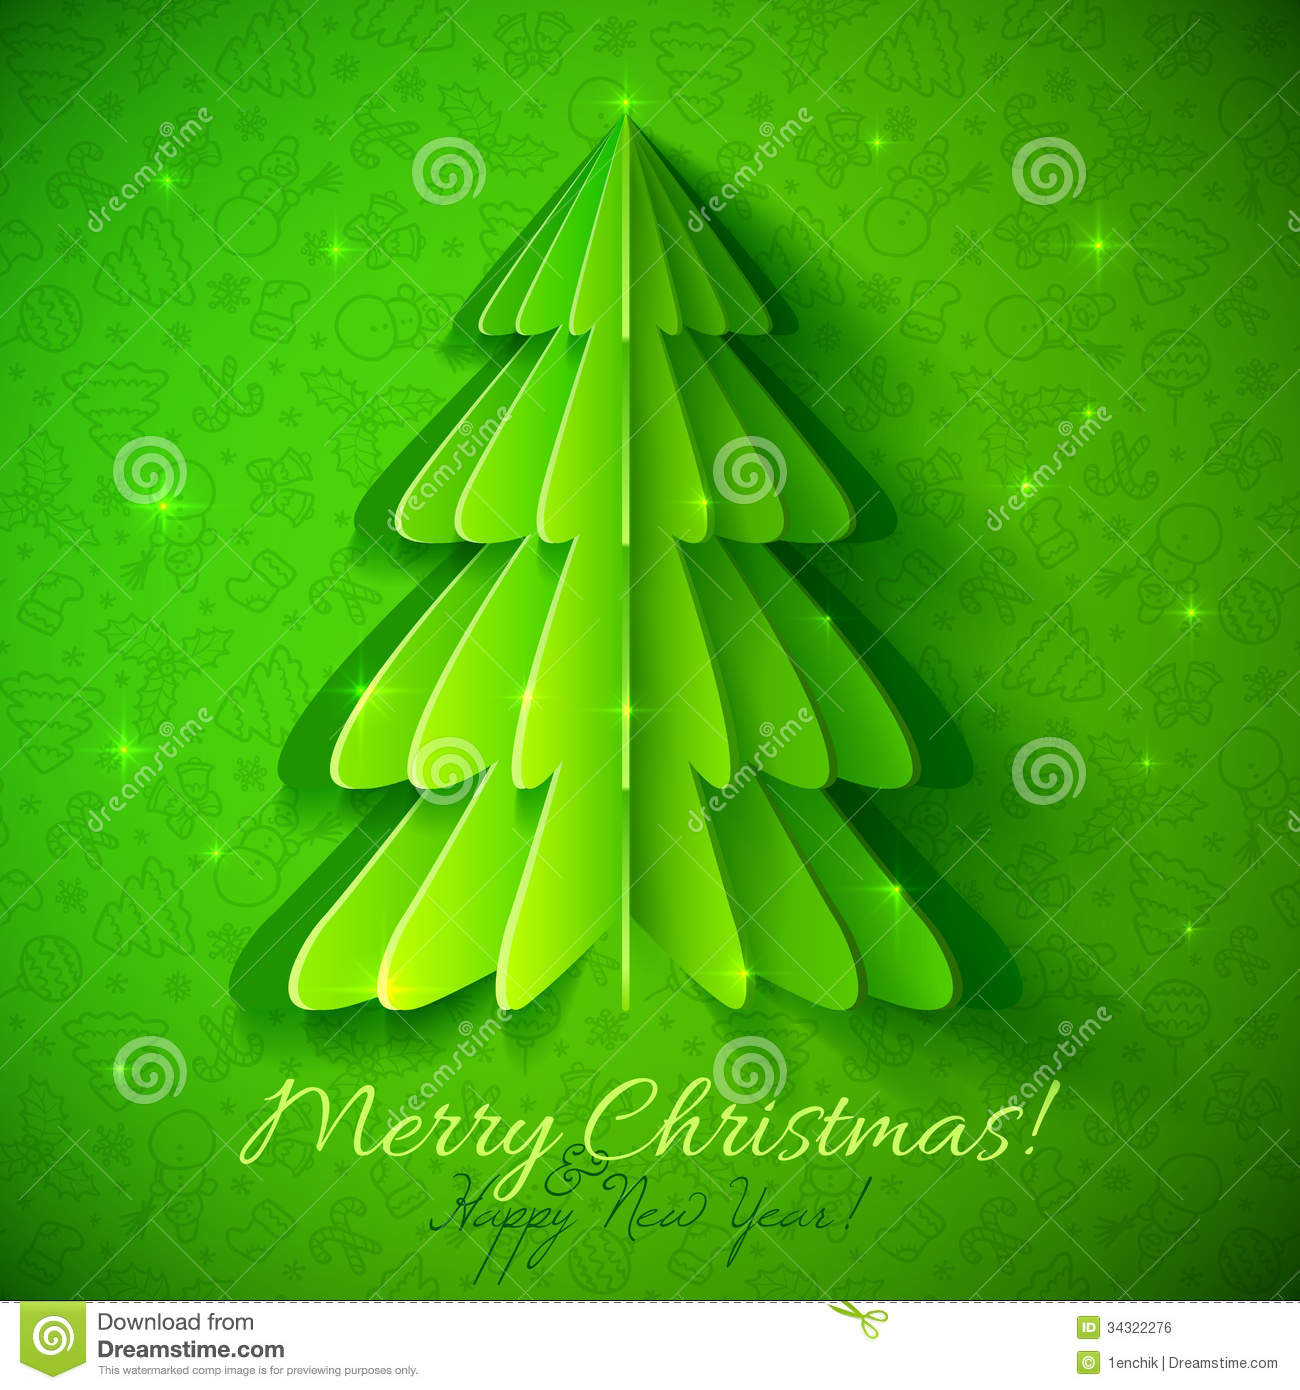 Green Origami Christmas Tree Greeting Card Royalty Free